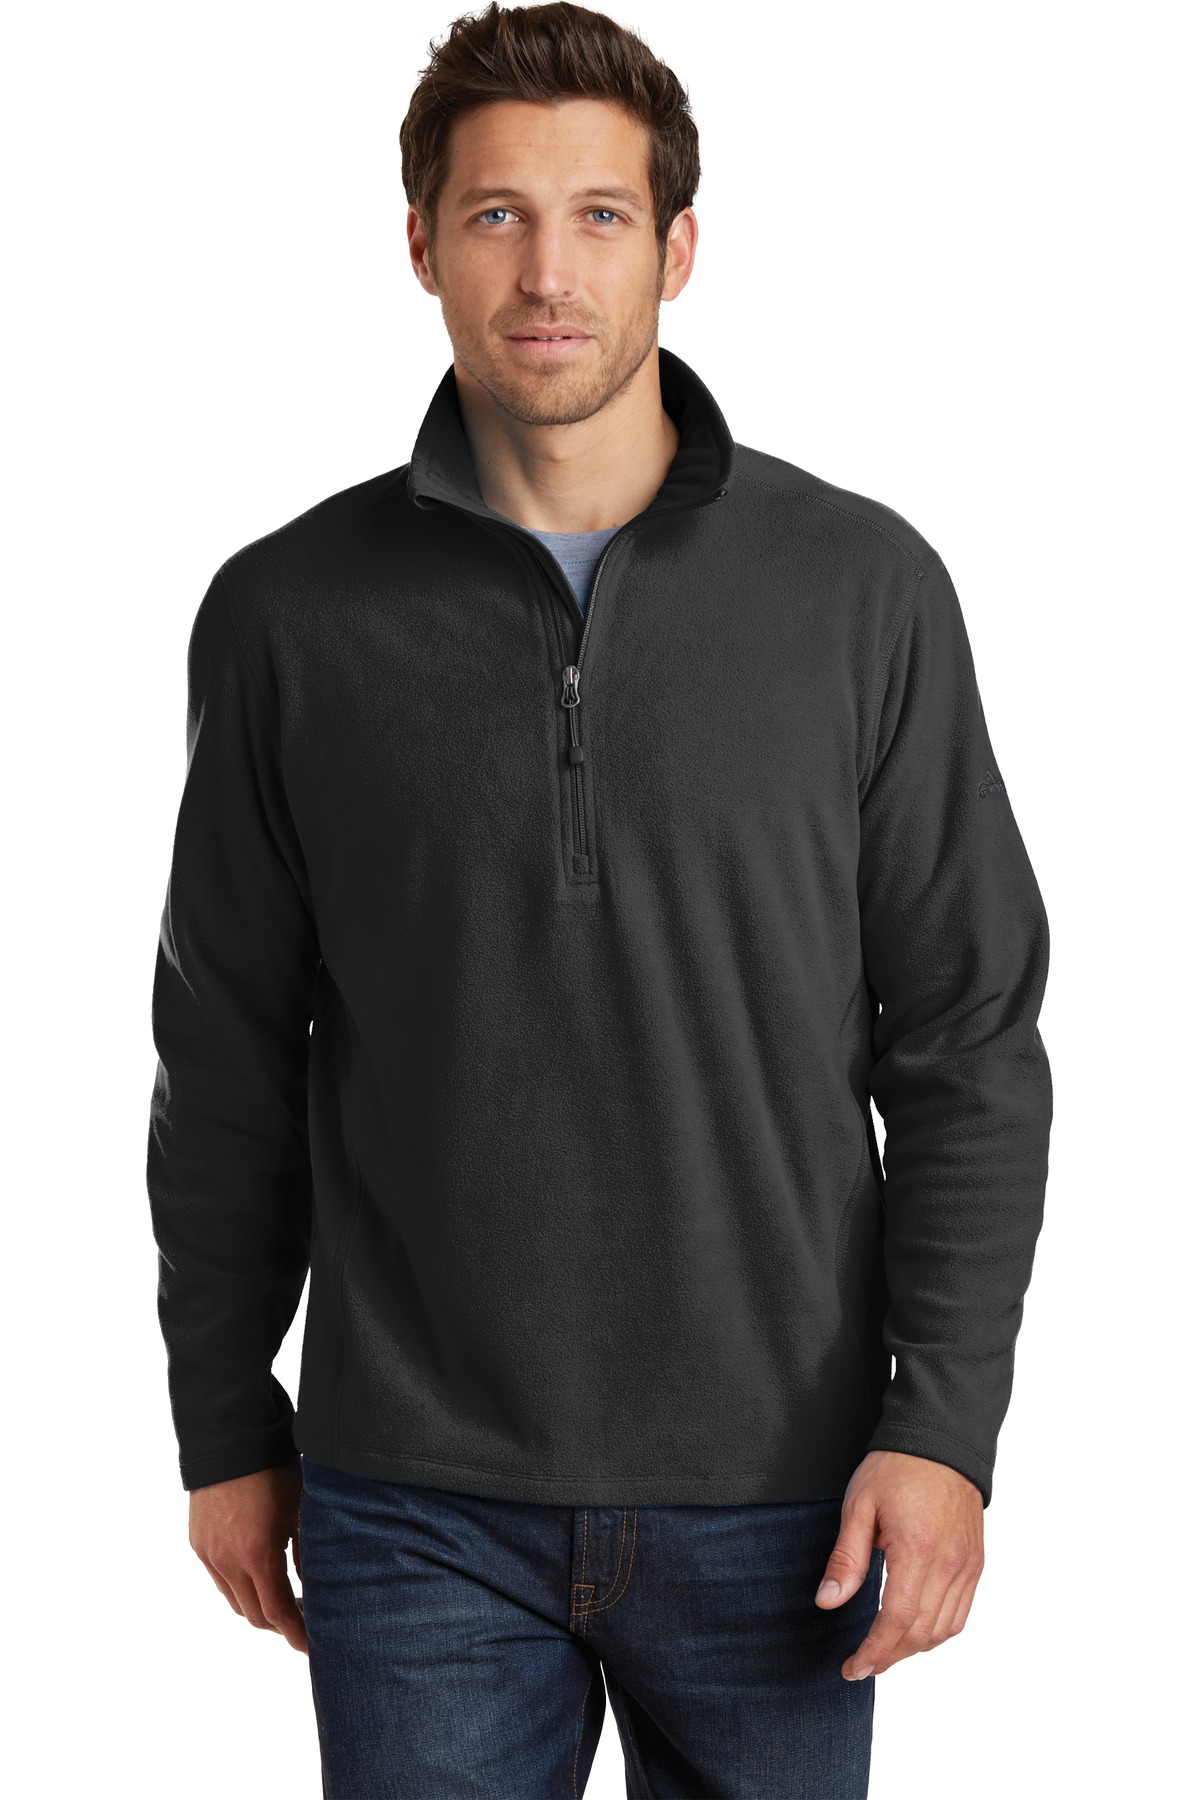 Eddie Bauer ® 1/2-Zip Microfleece Jacket. EB226 - Black